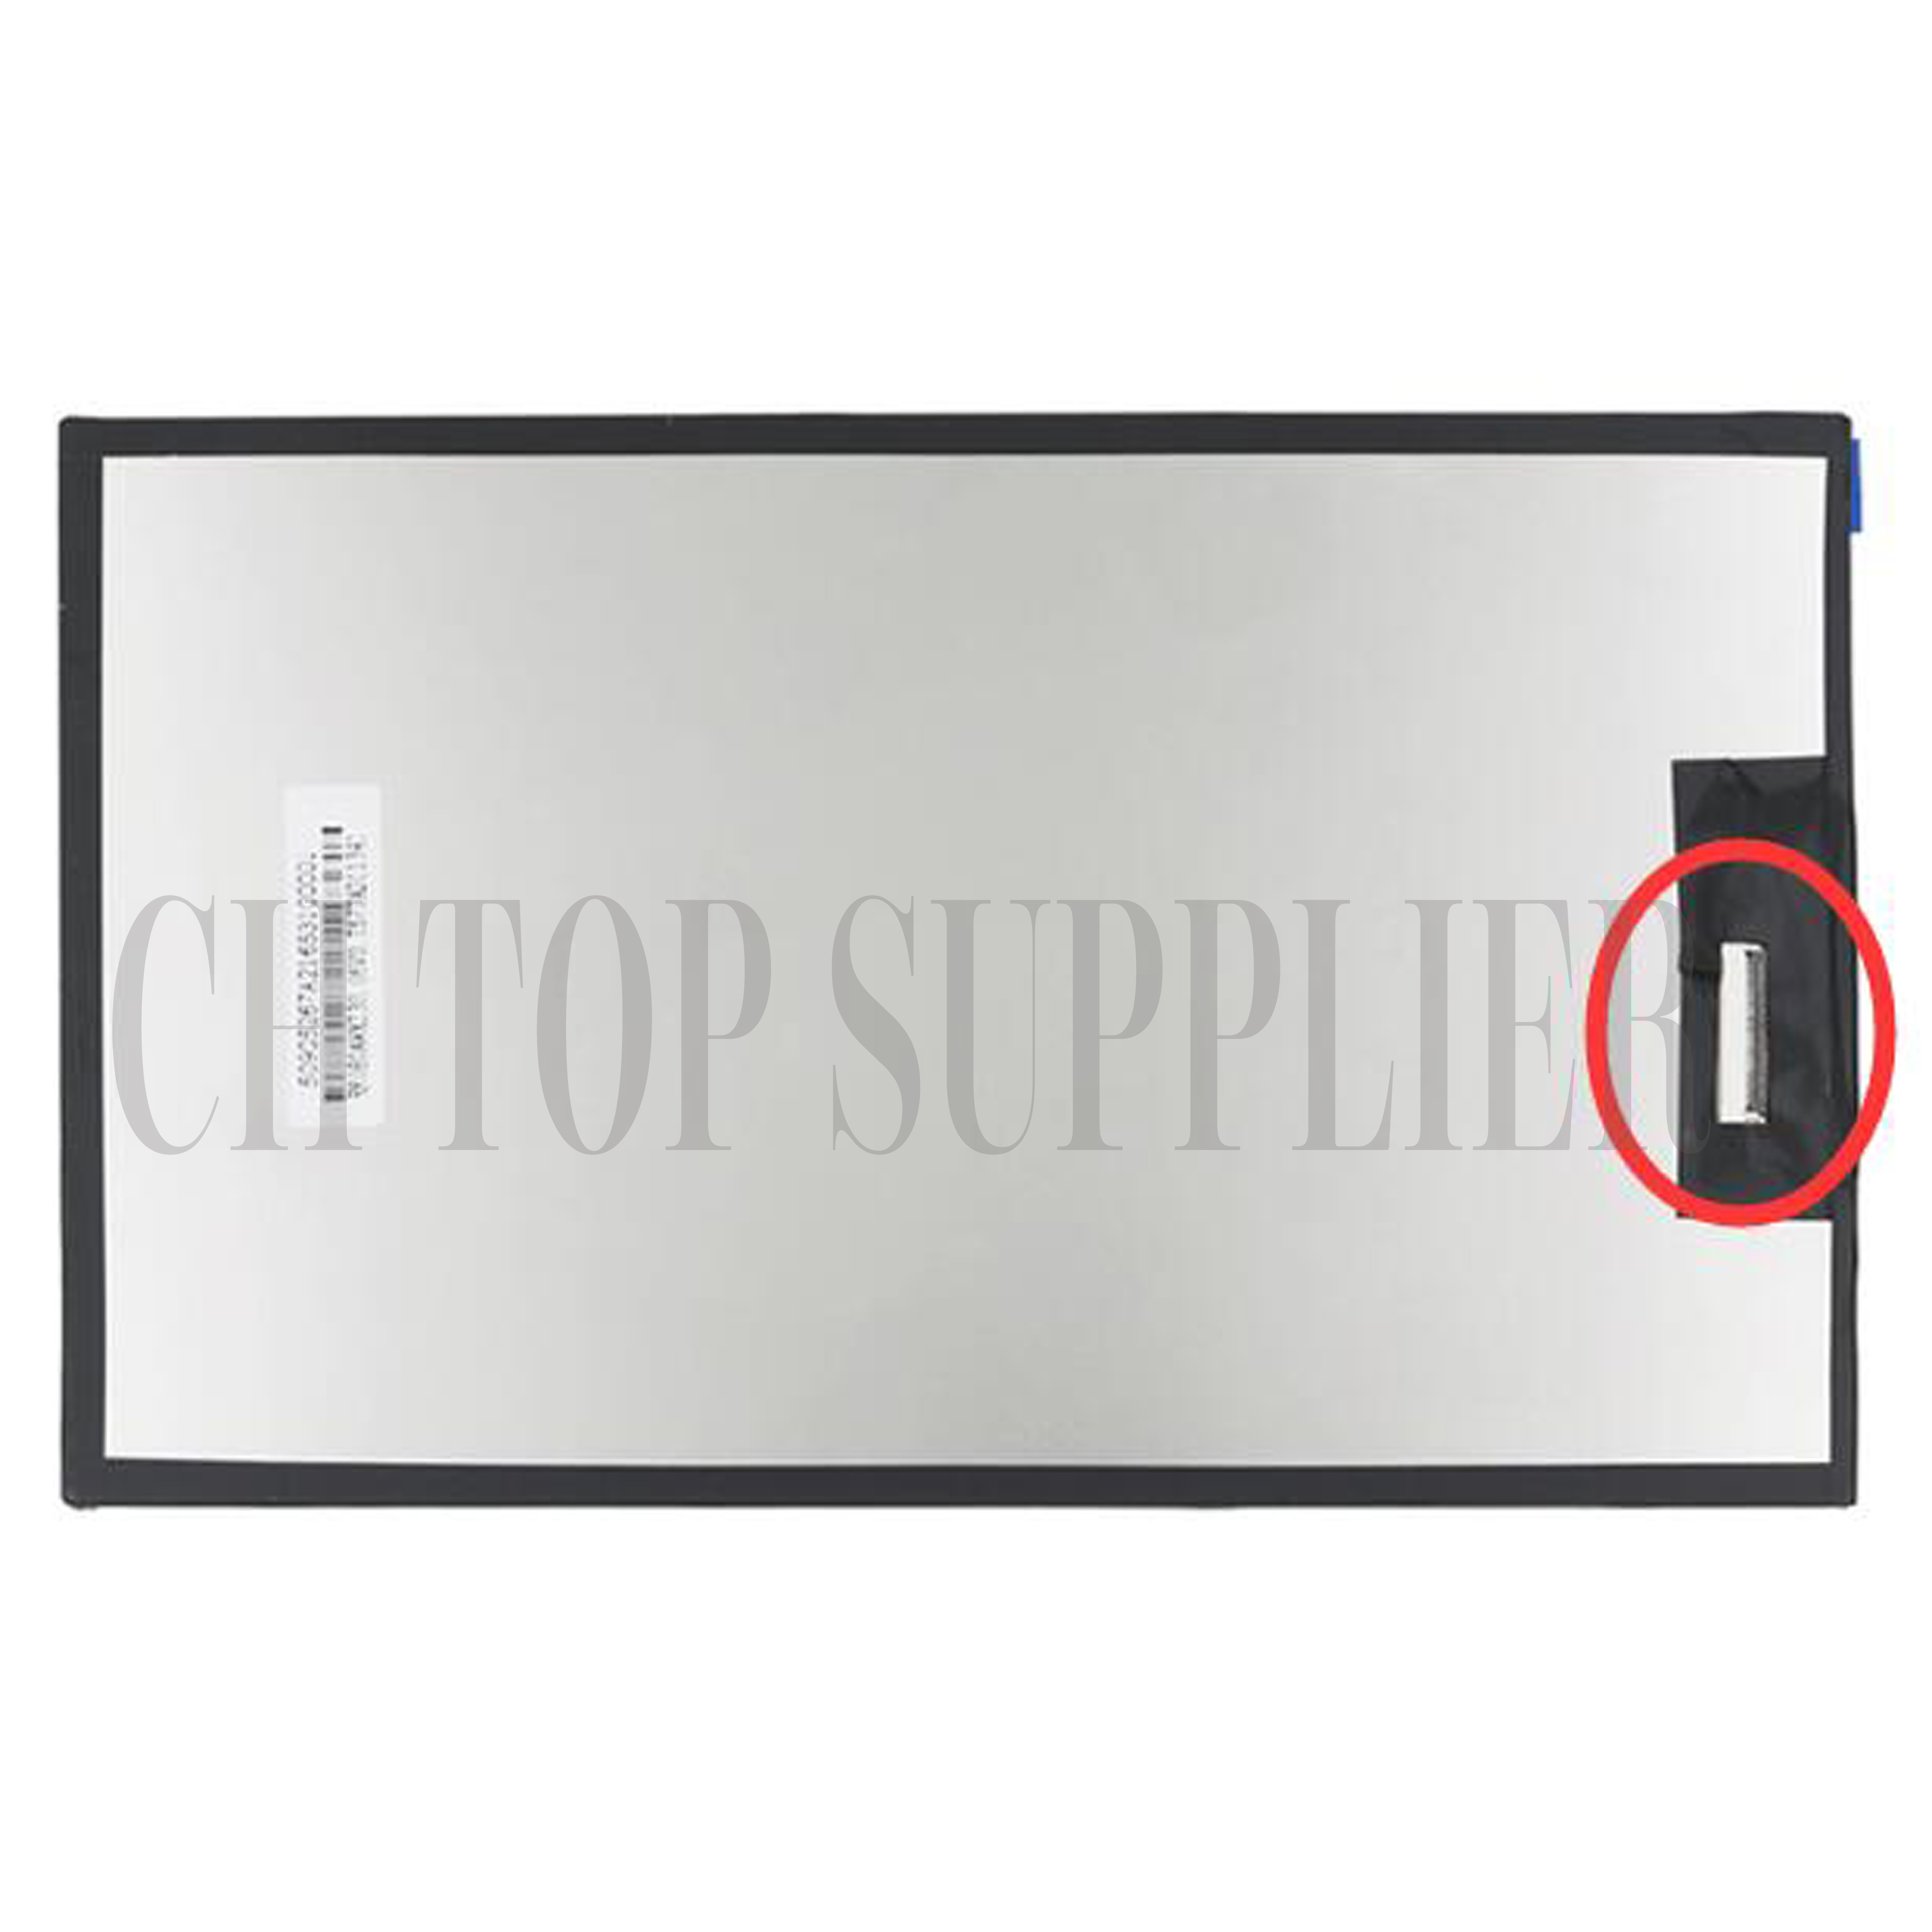 New LCD Matrix 8 inch for Prestigio multipad visconte quad 3gk LCD Display Replacement Free Shipping 8 inch touch screen for prestigio multipad wize 3408 4g panel digitizer multipad wize 3408 4g sensor replacement